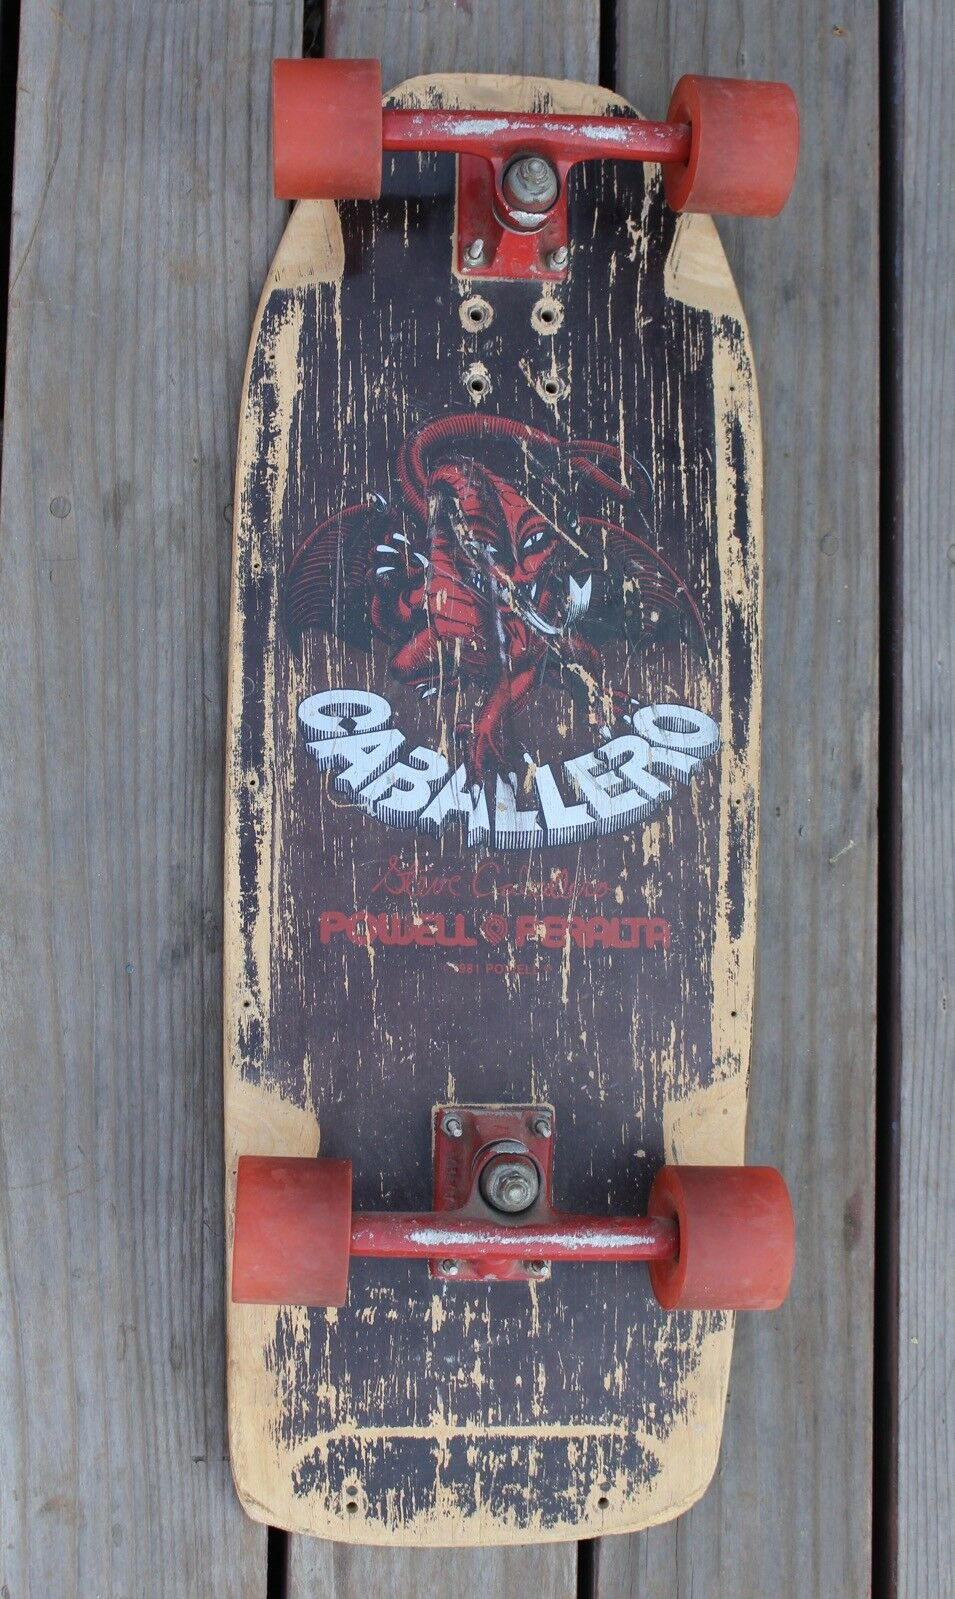 Rare Vintage 1981 Steve  Caballero Powell Peralta S board Complete Old School  factory outlet